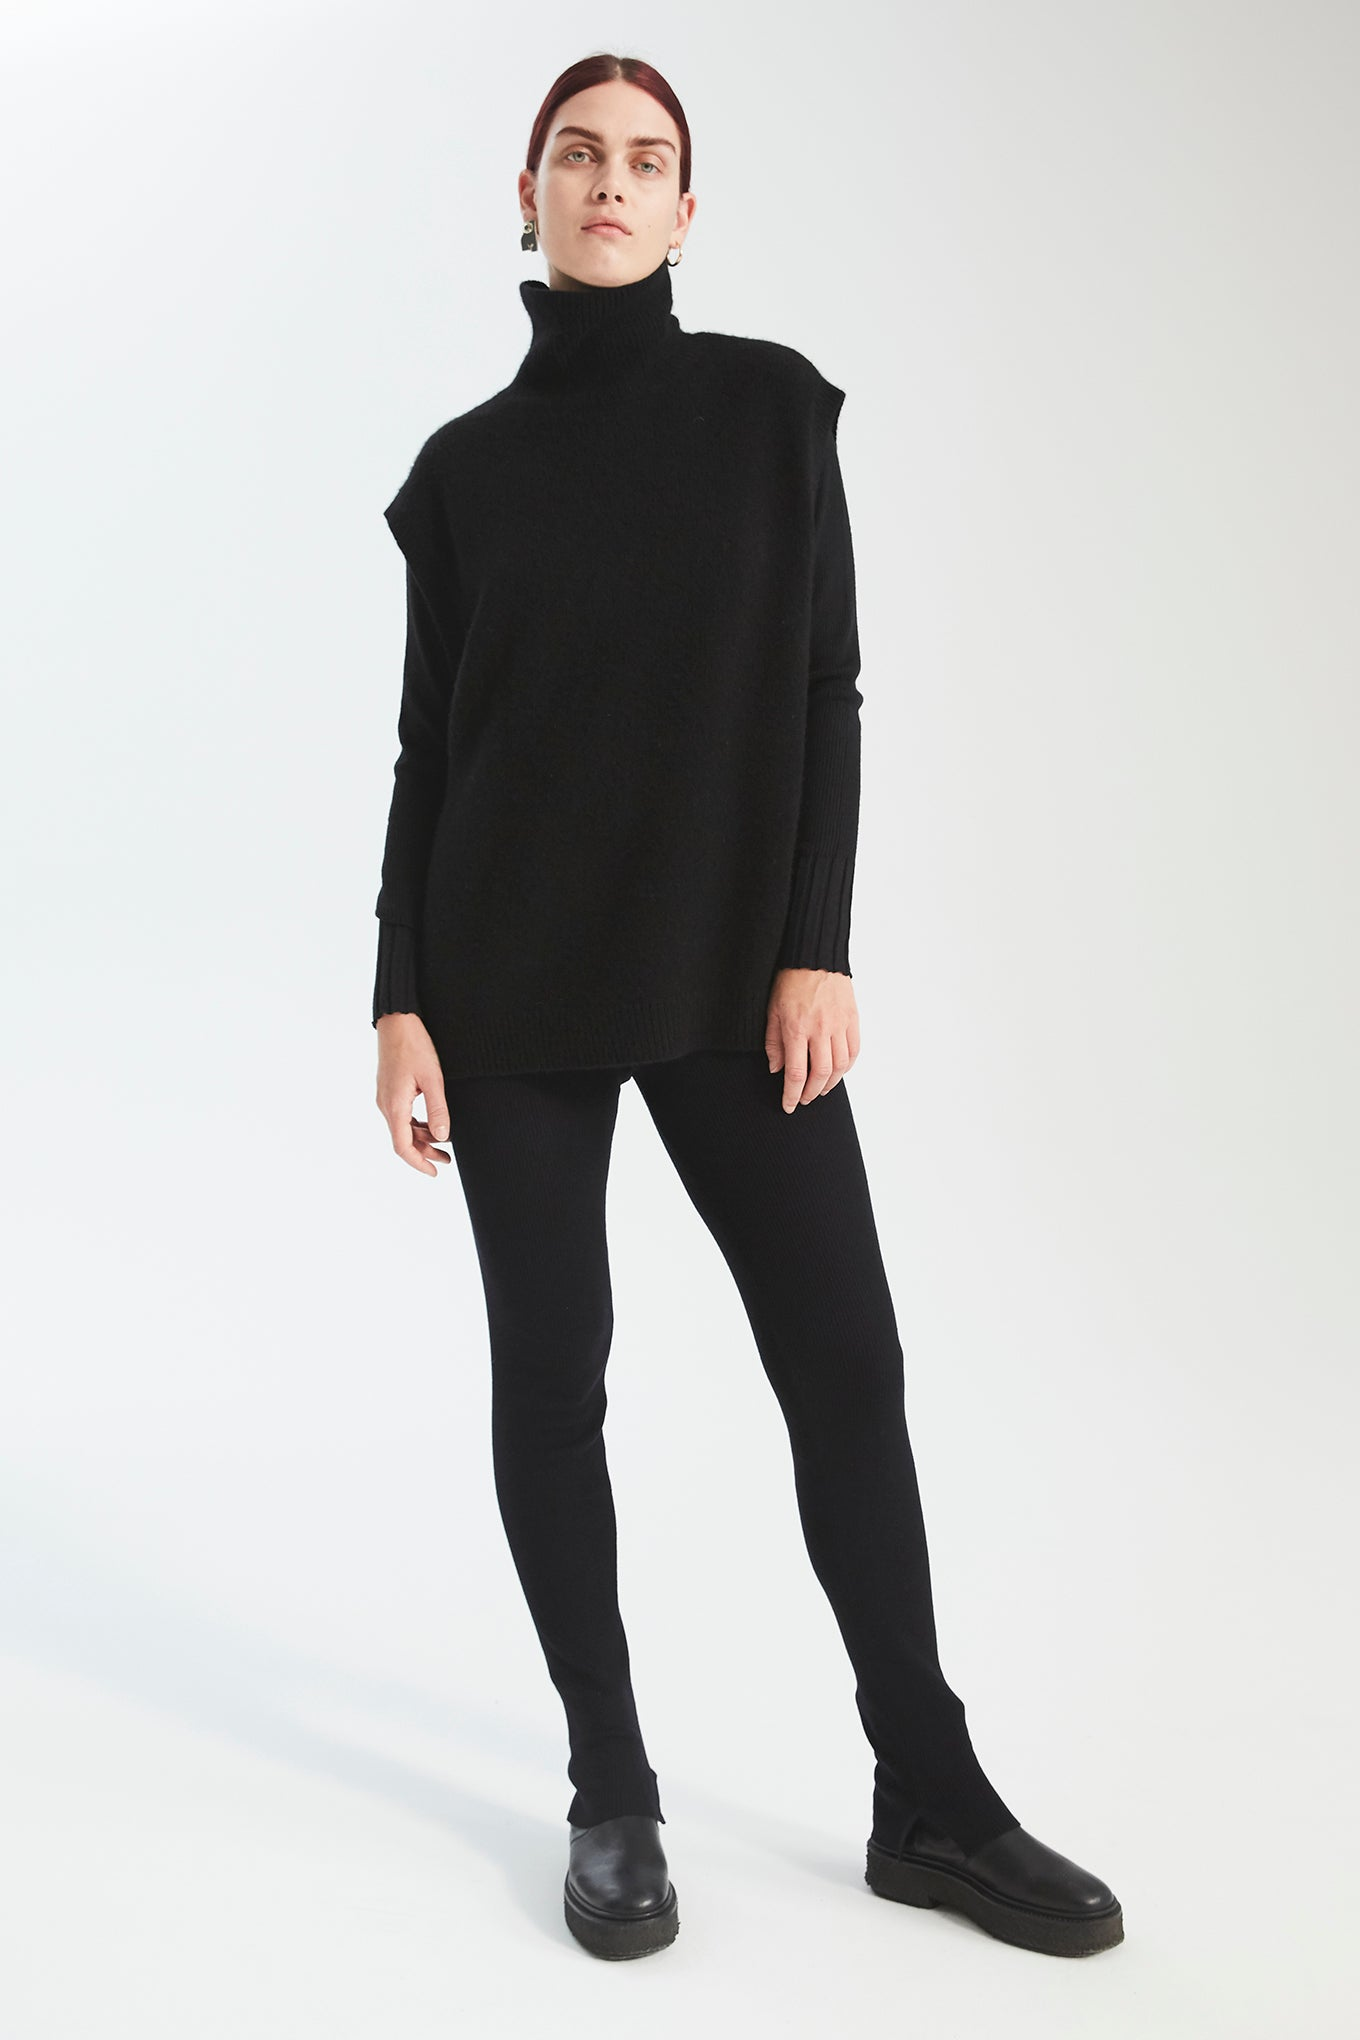 Dex Knit Leggings - Black - Silk/Wool